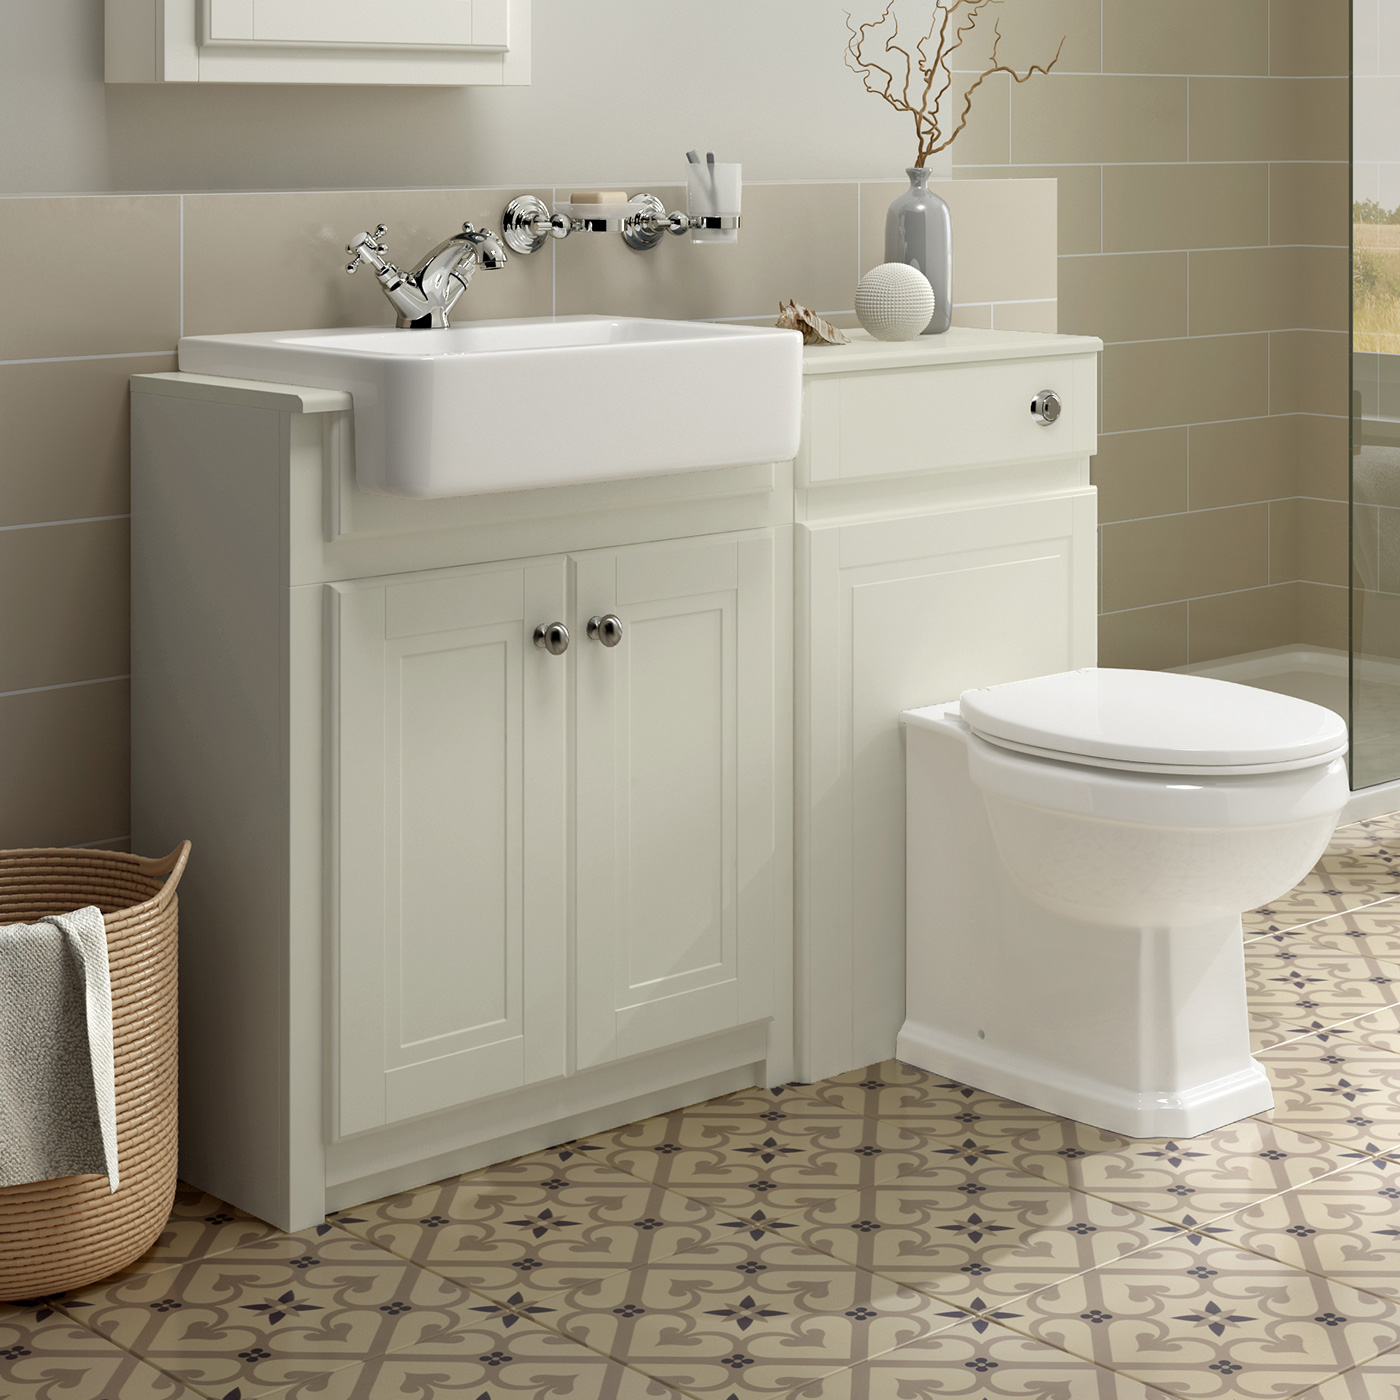 Traditional Combined Bathroom Furniture Sink Basin Vanity Unit & BTW Toilet